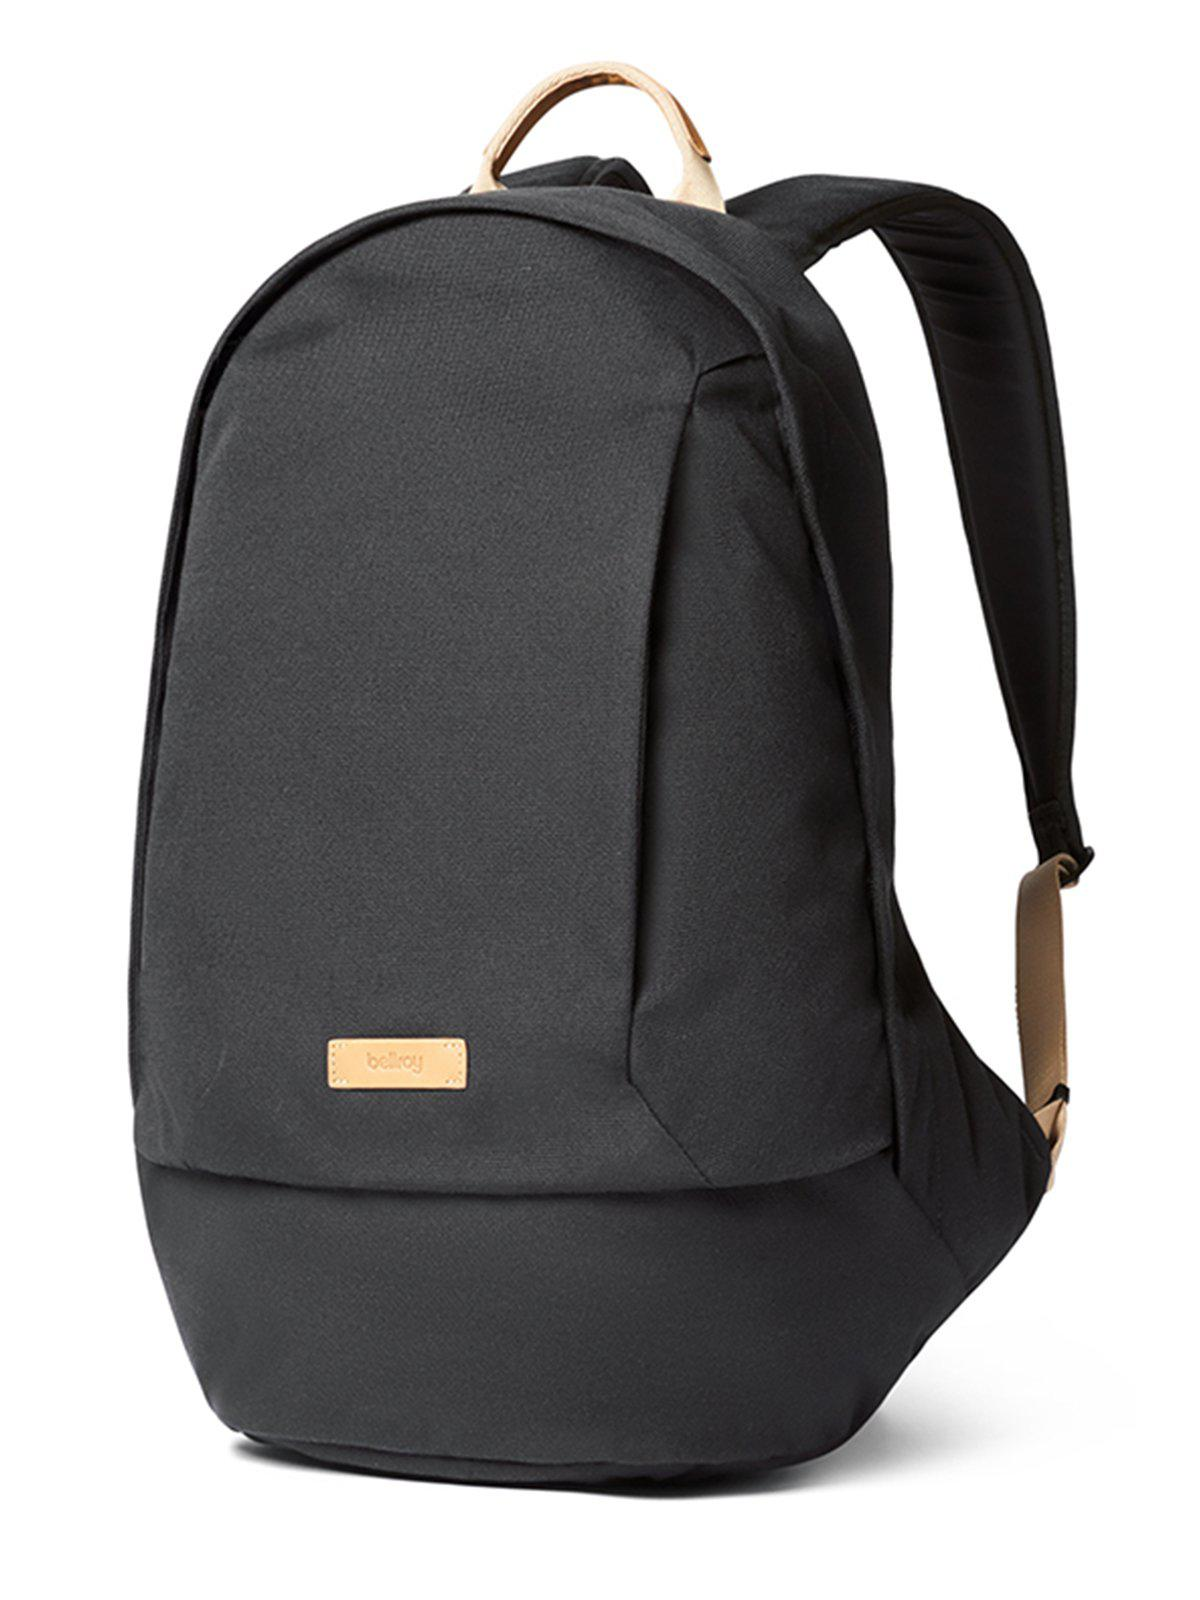 Bellroy Classic Backpack Charcoal Recycled - MORE by Morello Indonesia